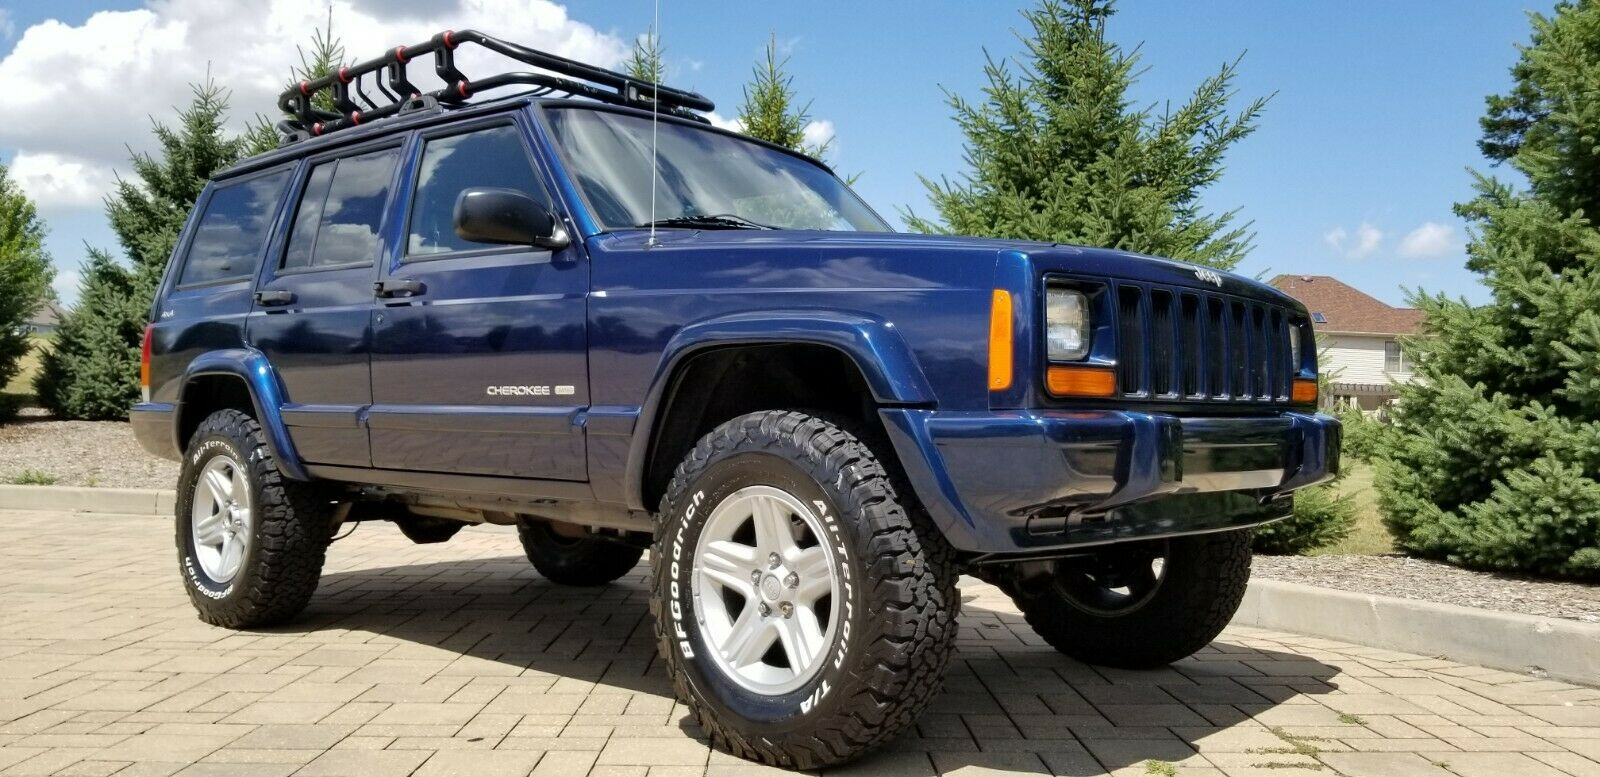 2001 Jeep Cherokee Xj 4 4 Lifted Limited Edition For Sale